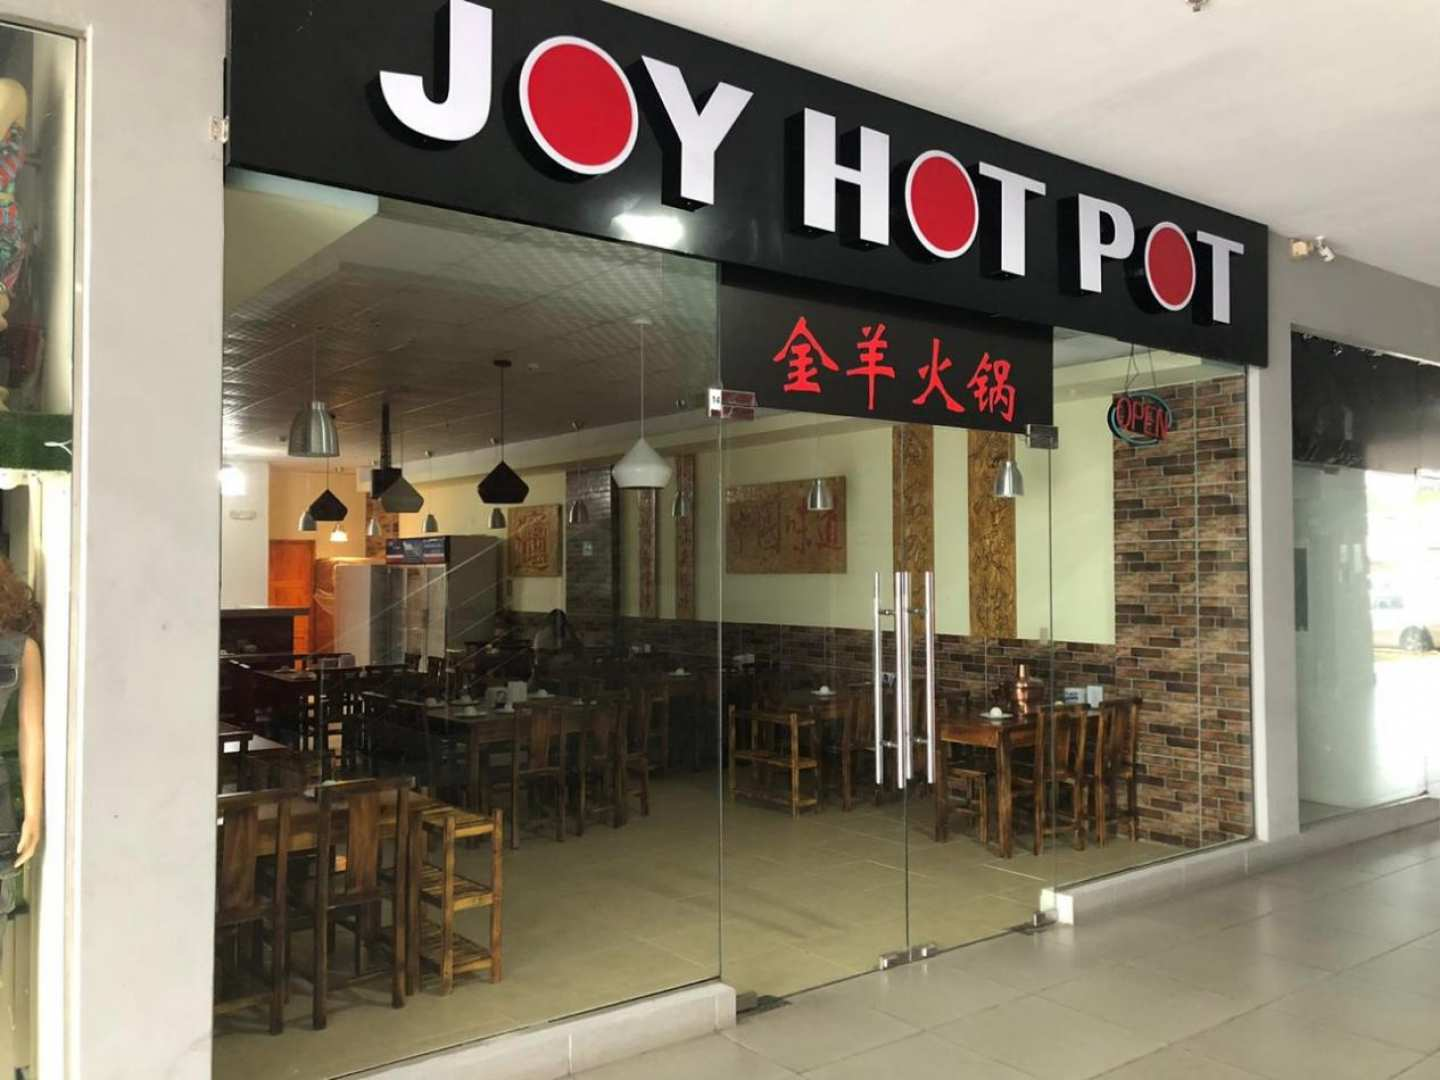 Joy Hot Pot